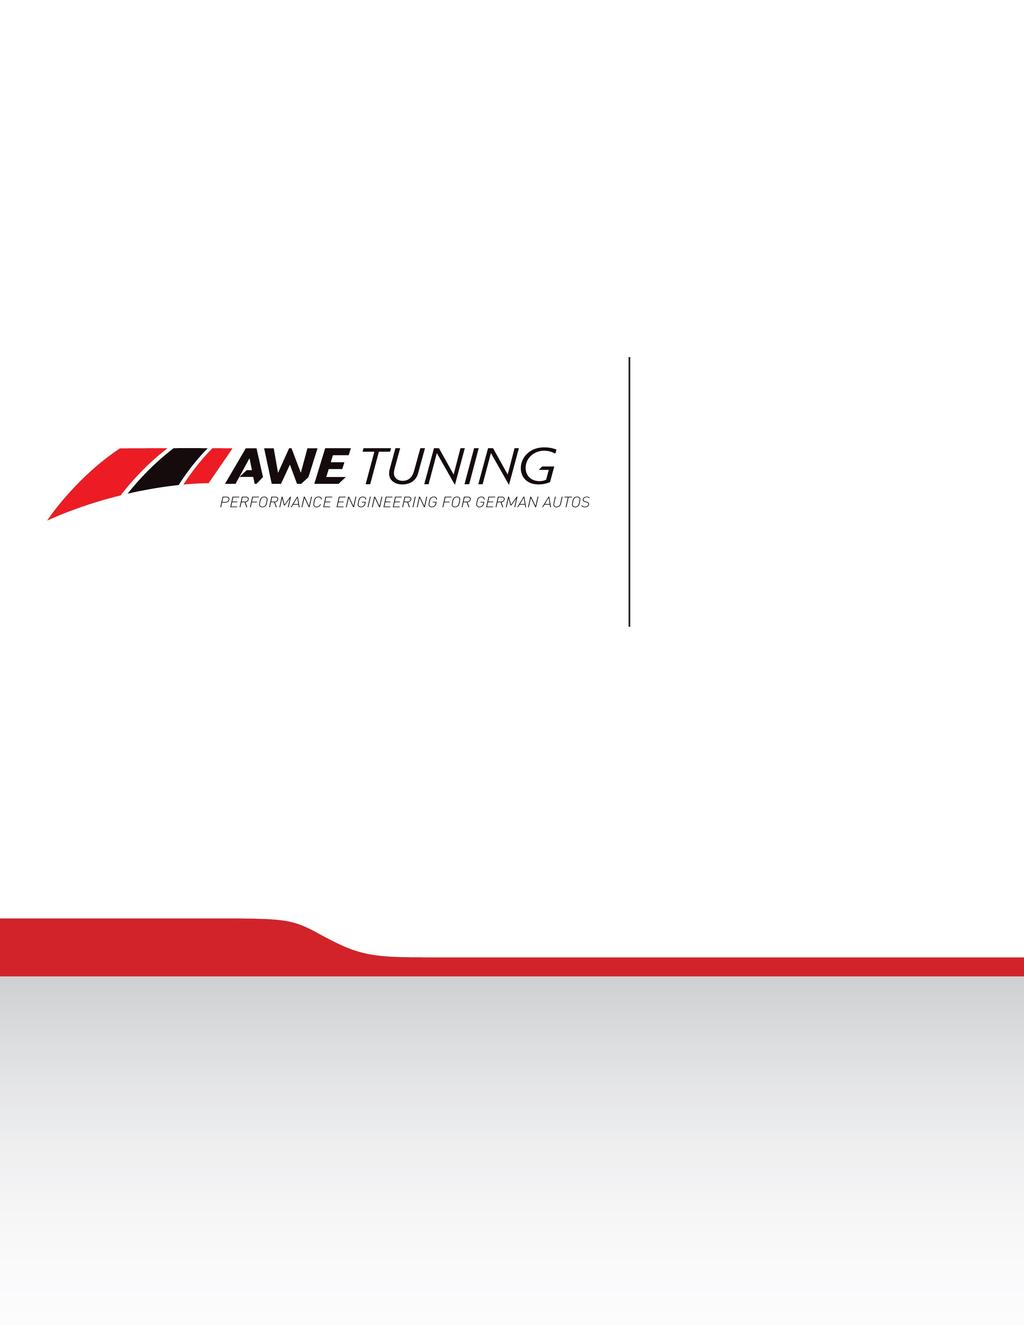 INSTALLATION GUIDE 2008-2012 Audi S5 4.2l Touring Edition Exhaust System 90mm Tips Congratulations on your purchase of the AWE Tuning Touring Edition exhaust for the 2008-2012 Audi S5 4.2L V8.